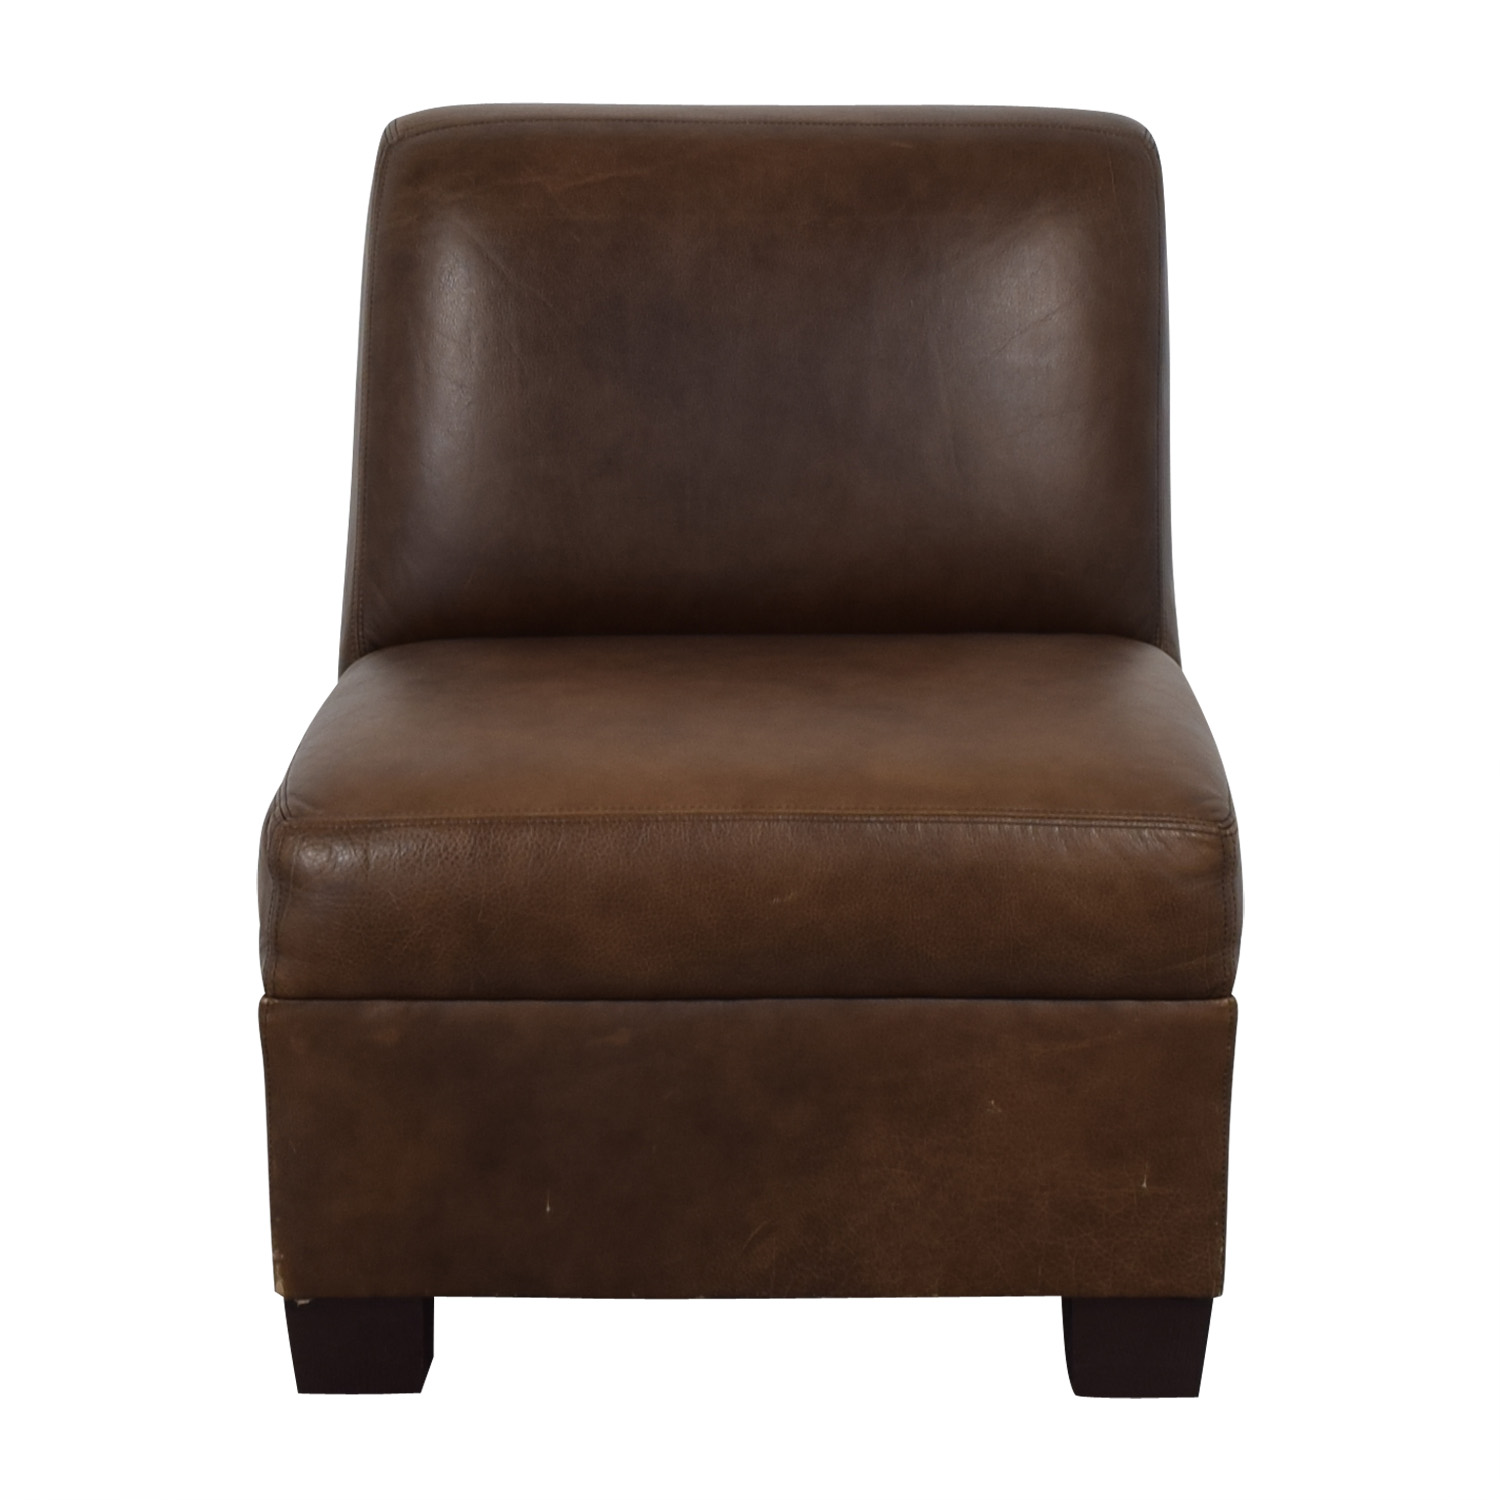 Pottery Barn Leather Lounge Chair Pottery Barn